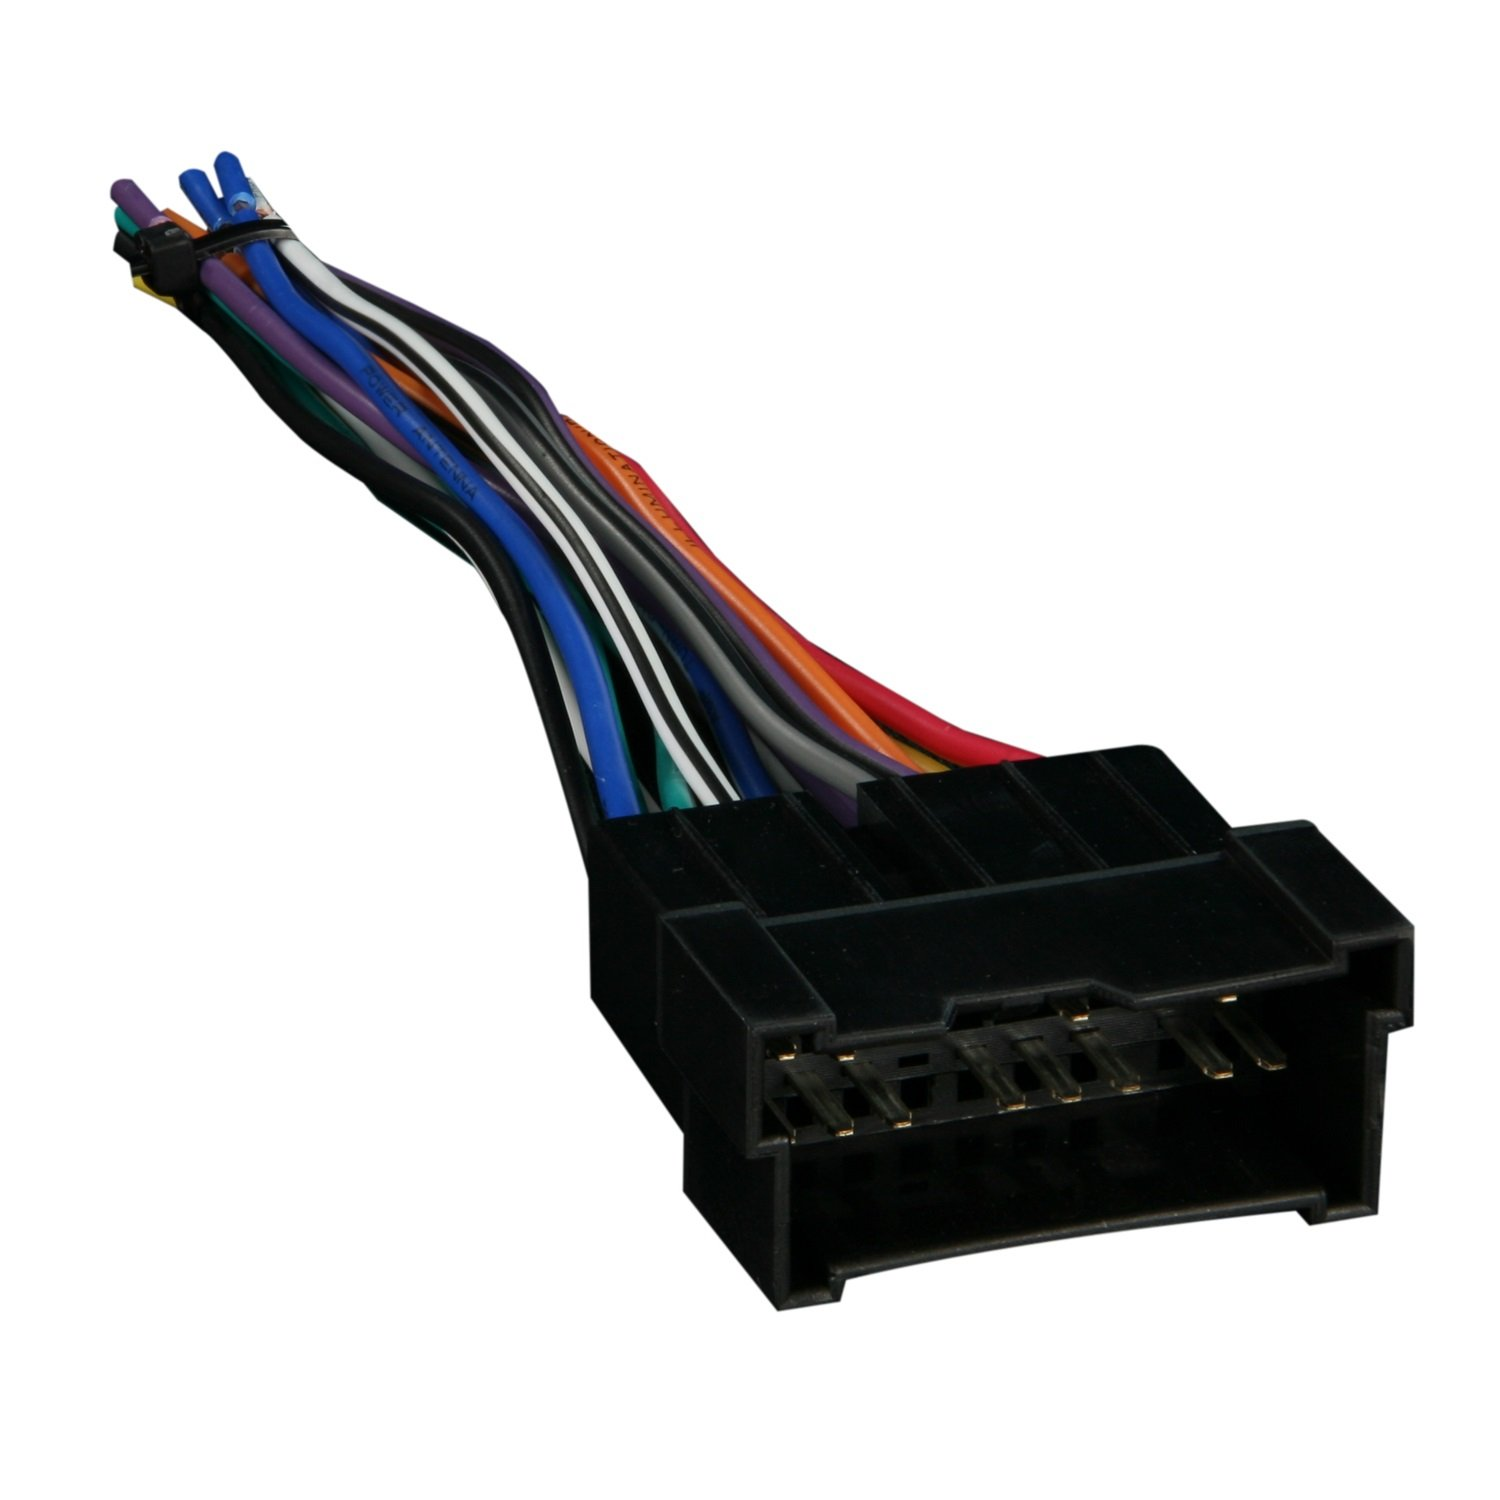 617yeBmOquL._SL1500_ amazon com metra 70 7301 radio wiring harness for hyundai kia 99 Radio Wiring Harness Adapter at honlapkeszites.co